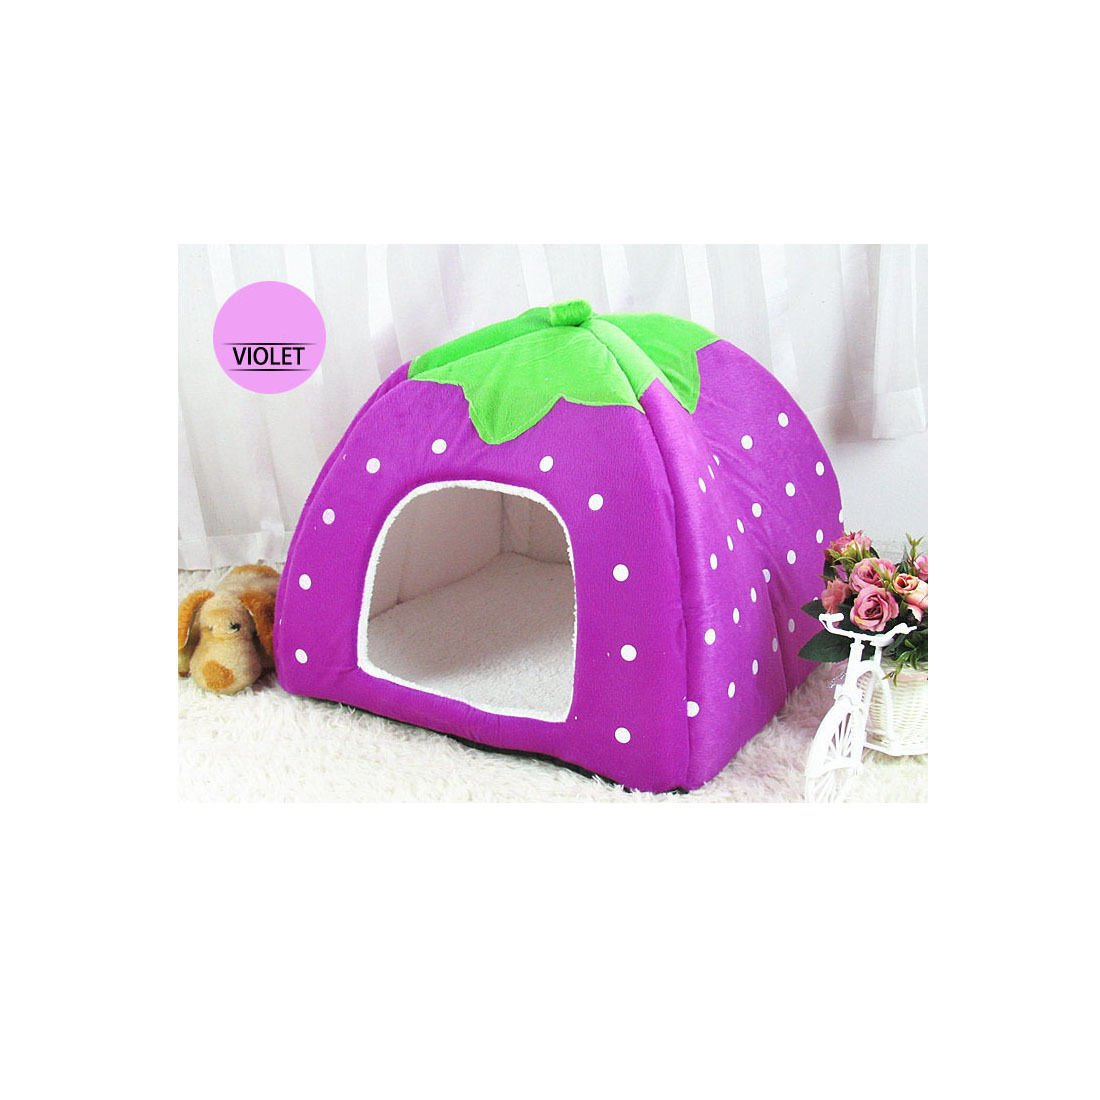 Amazon.com : 1pcs x Angelakerry Pet Dog Cat Bed Warm Cushion House Strawberry Kennel Doggy Soft Bed New(Pink colour M Size) : Pet Supplies